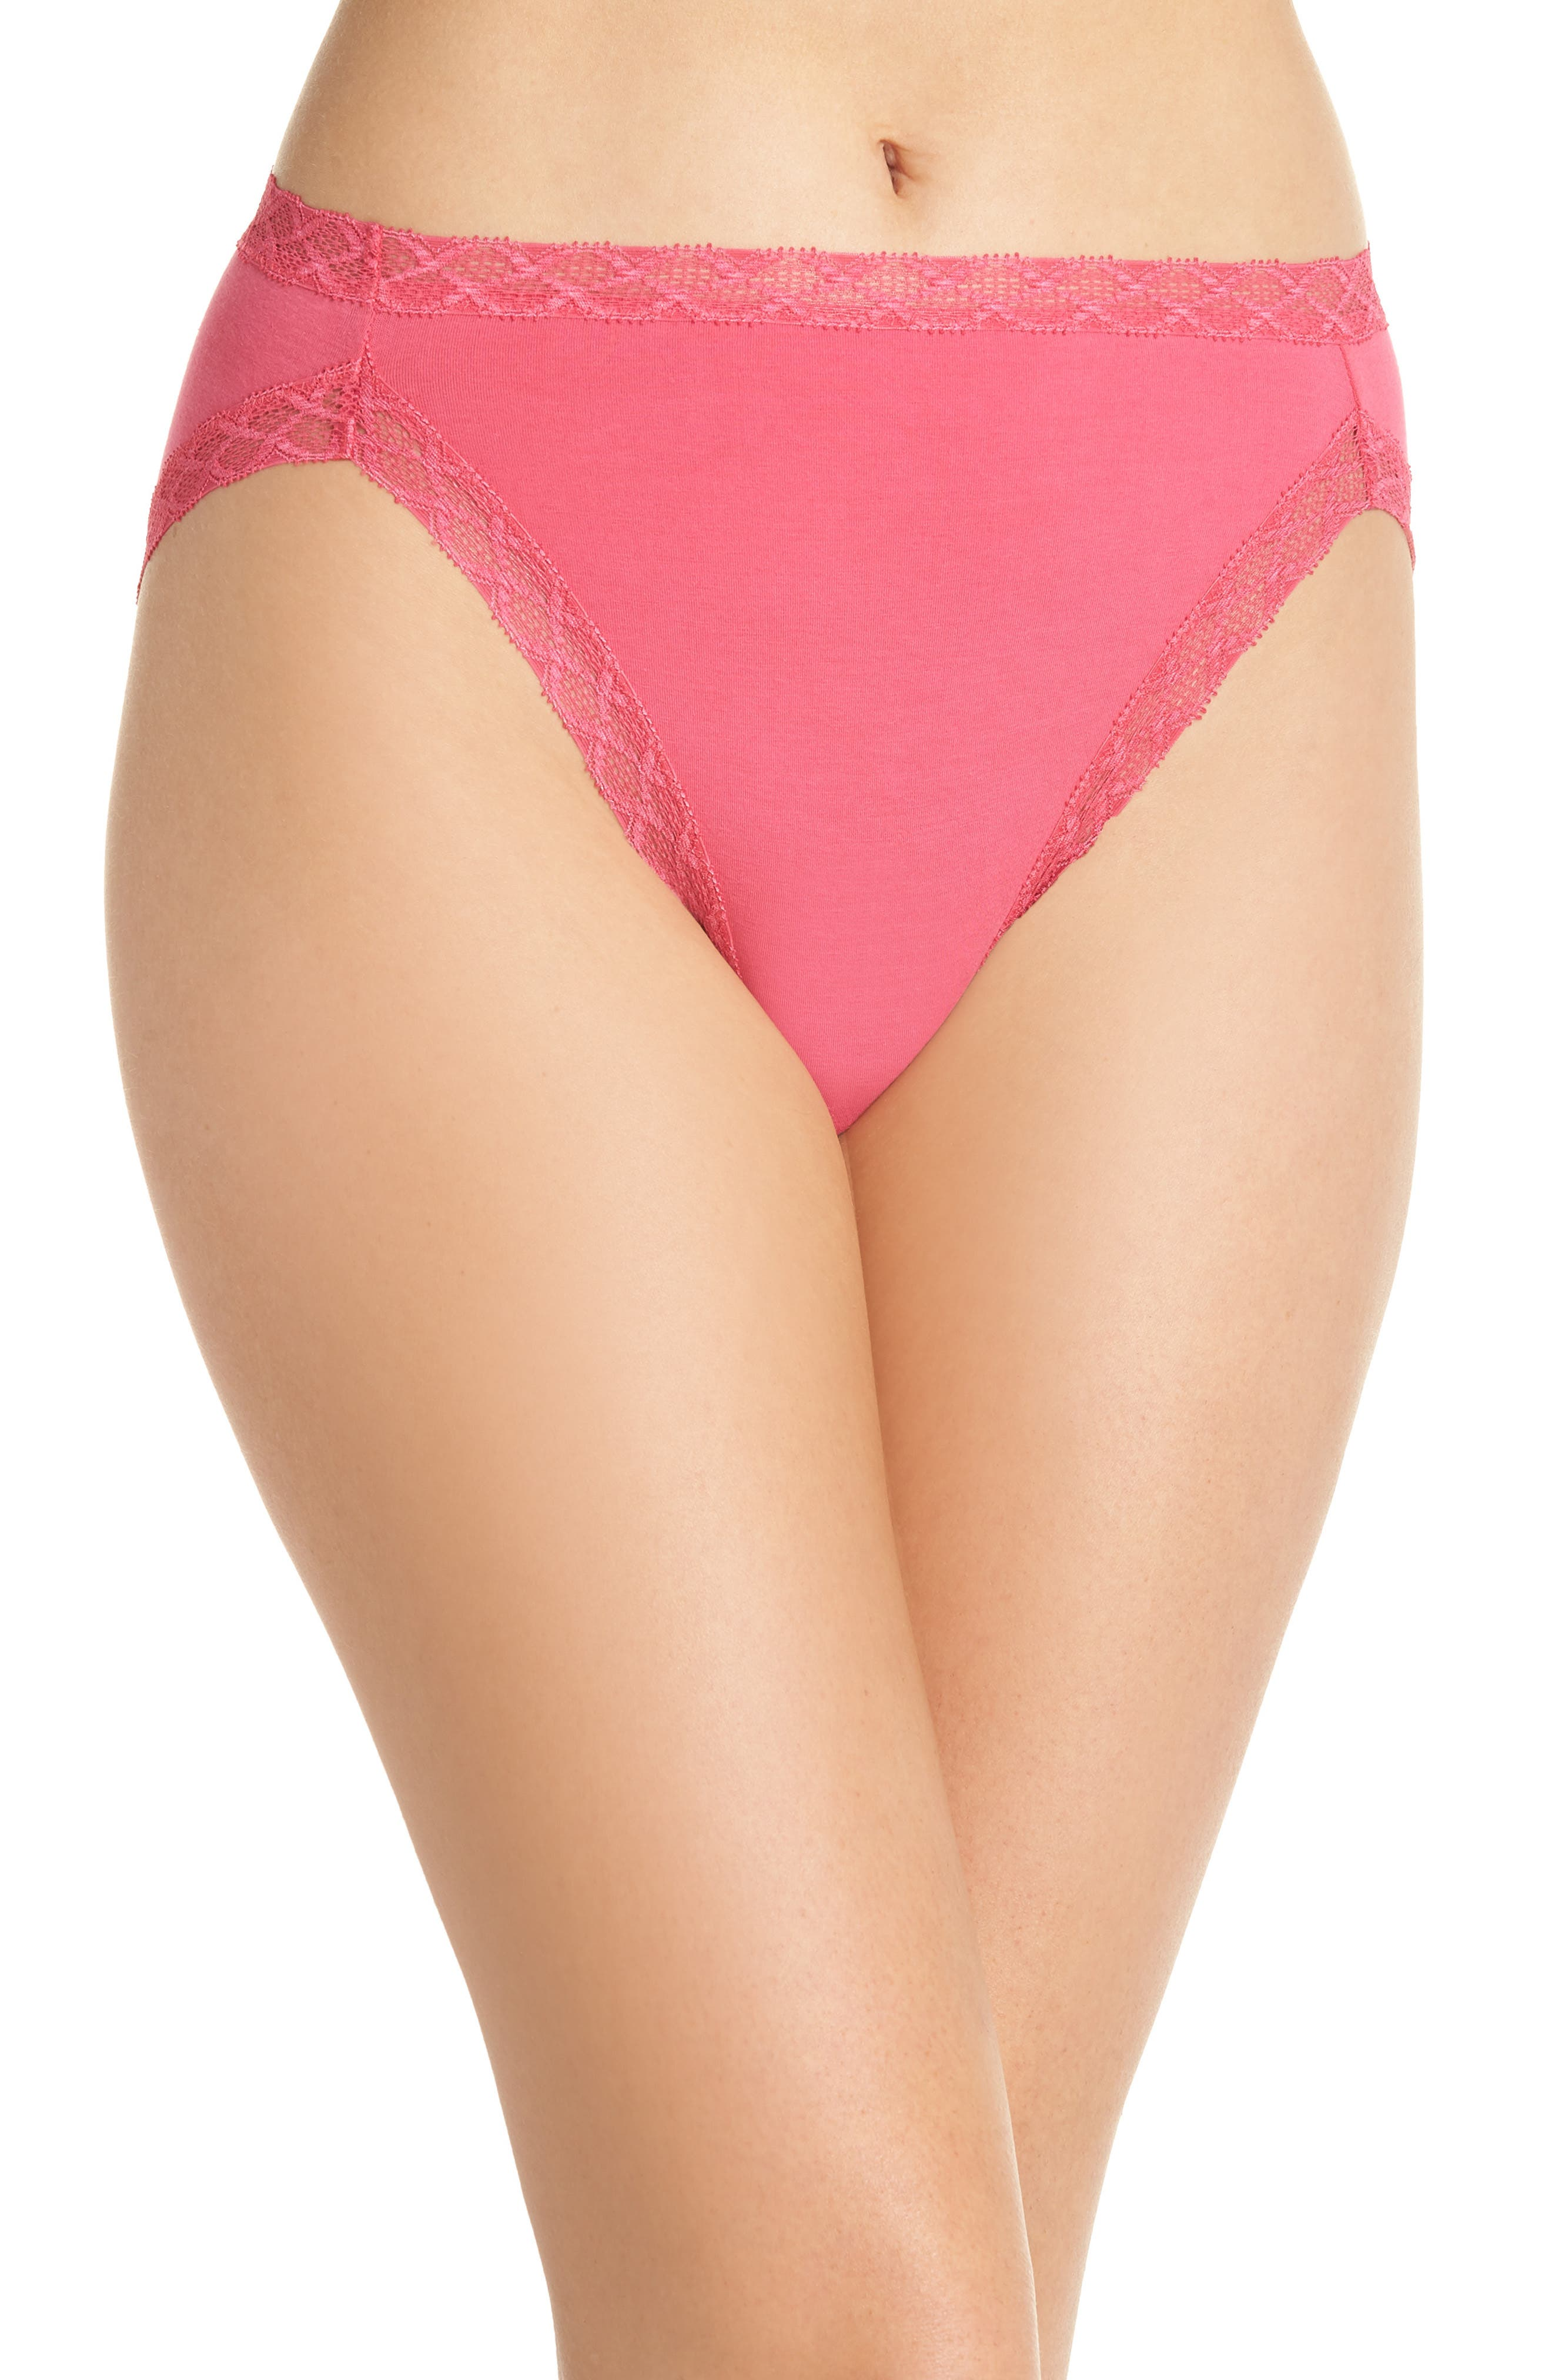 Bliss French Cut Briefs,                             Main thumbnail 1, color,                             HOT PINK